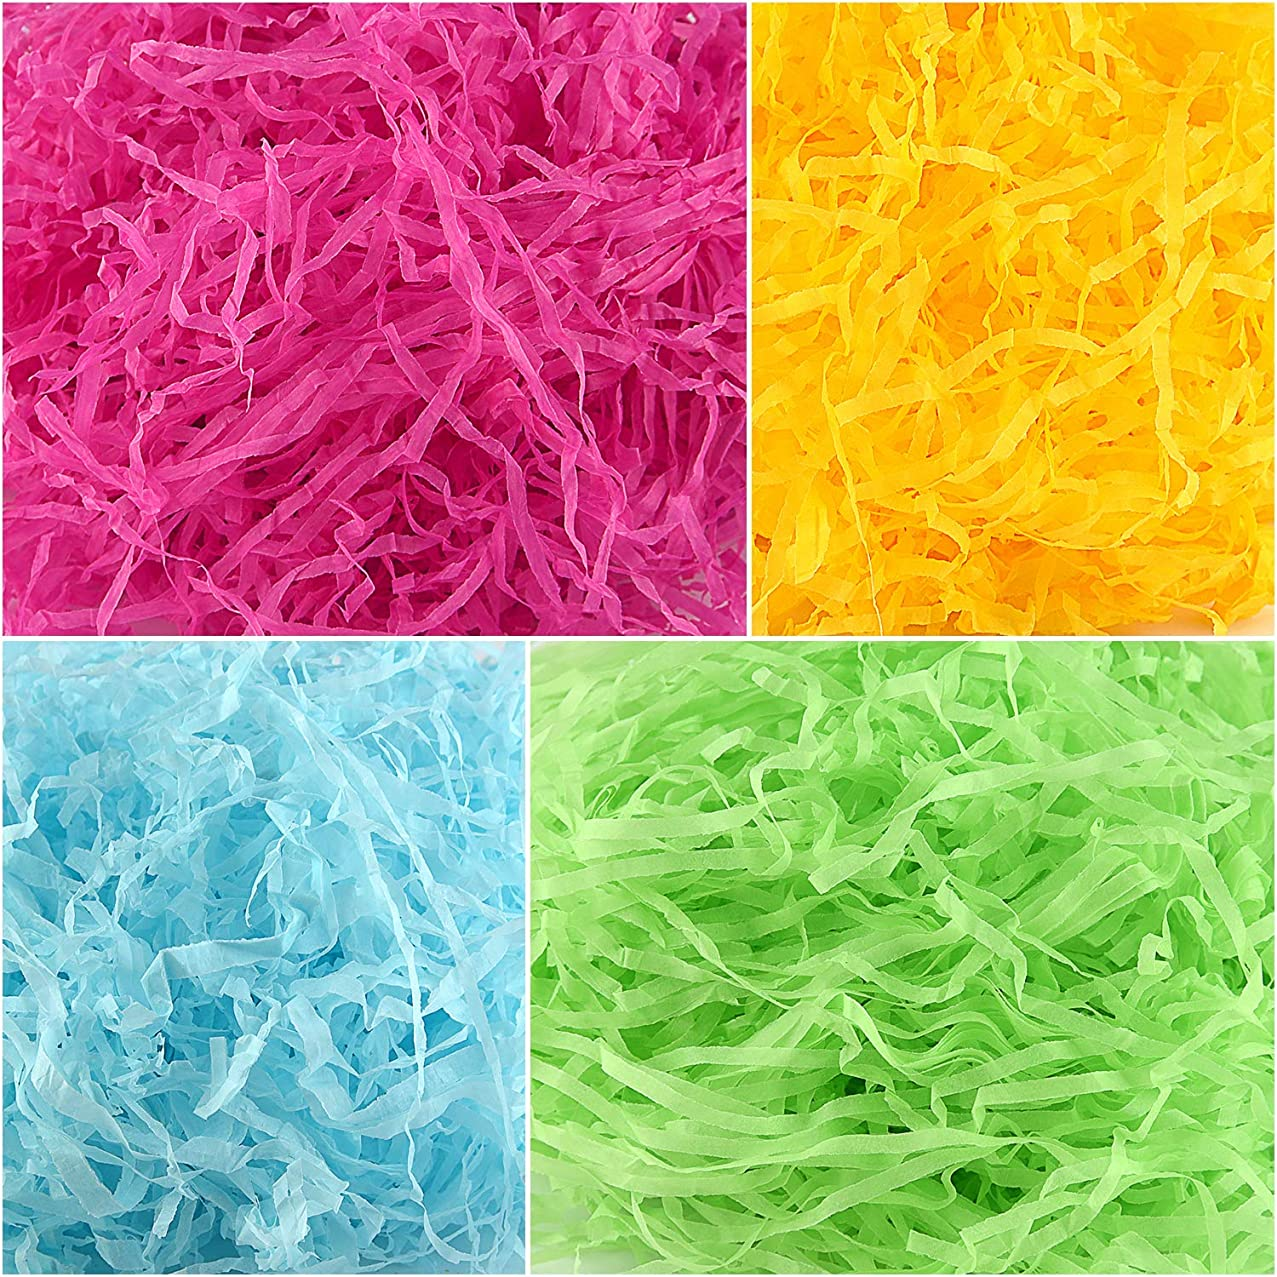 TUPARKA 250g Easter Paper Grass,Easter Basket Grass for Egg Stuffers,Shredded Tissue Craft for Easter Day Decoration Supplies (Pink,Blue,Yellow,Green)